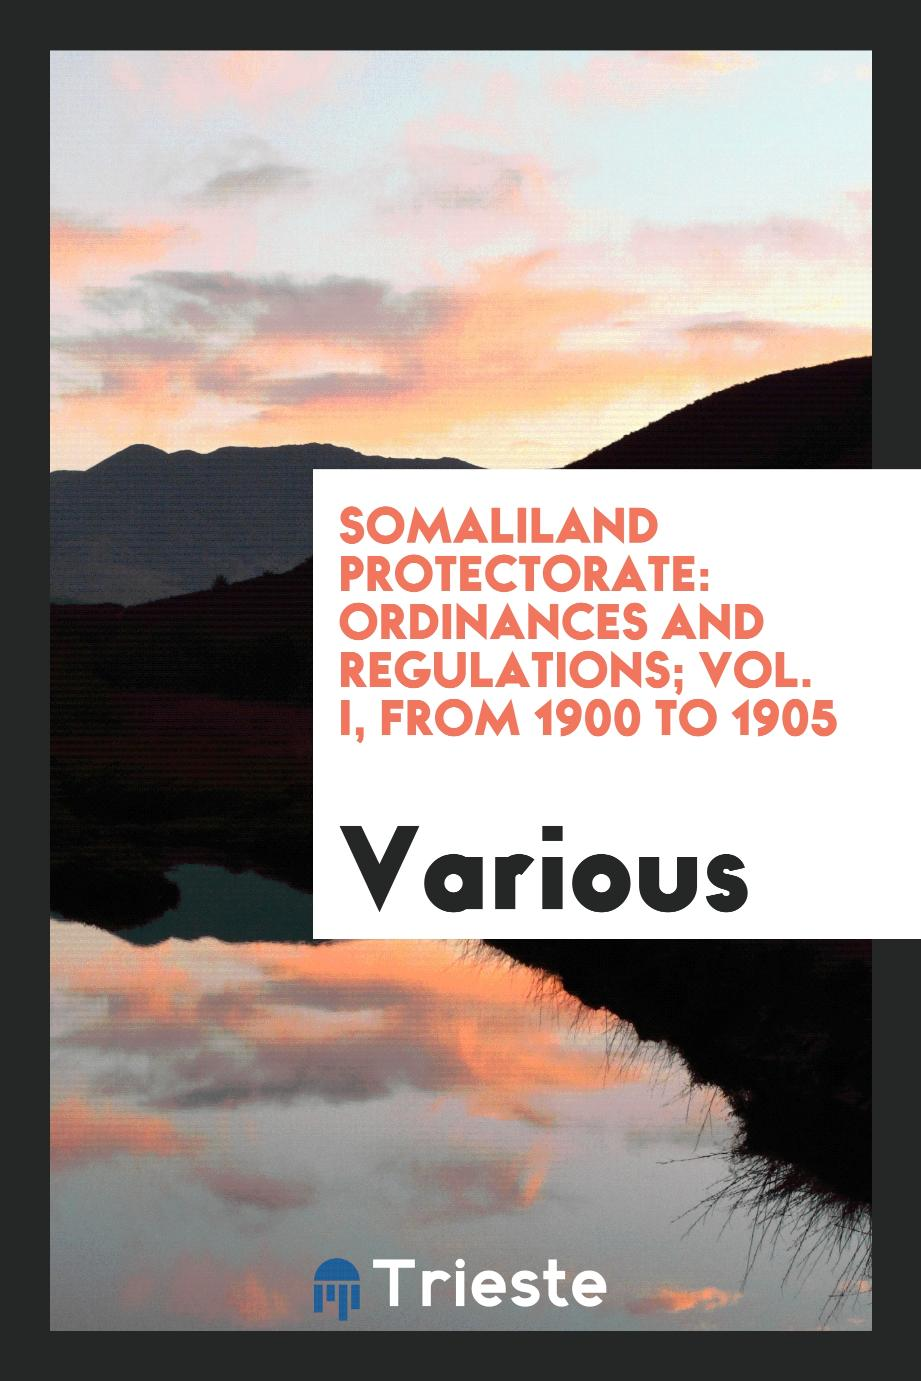 Somaliland Protectorate: Ordinances and Regulations; Vol. I, From 1900 to 1905